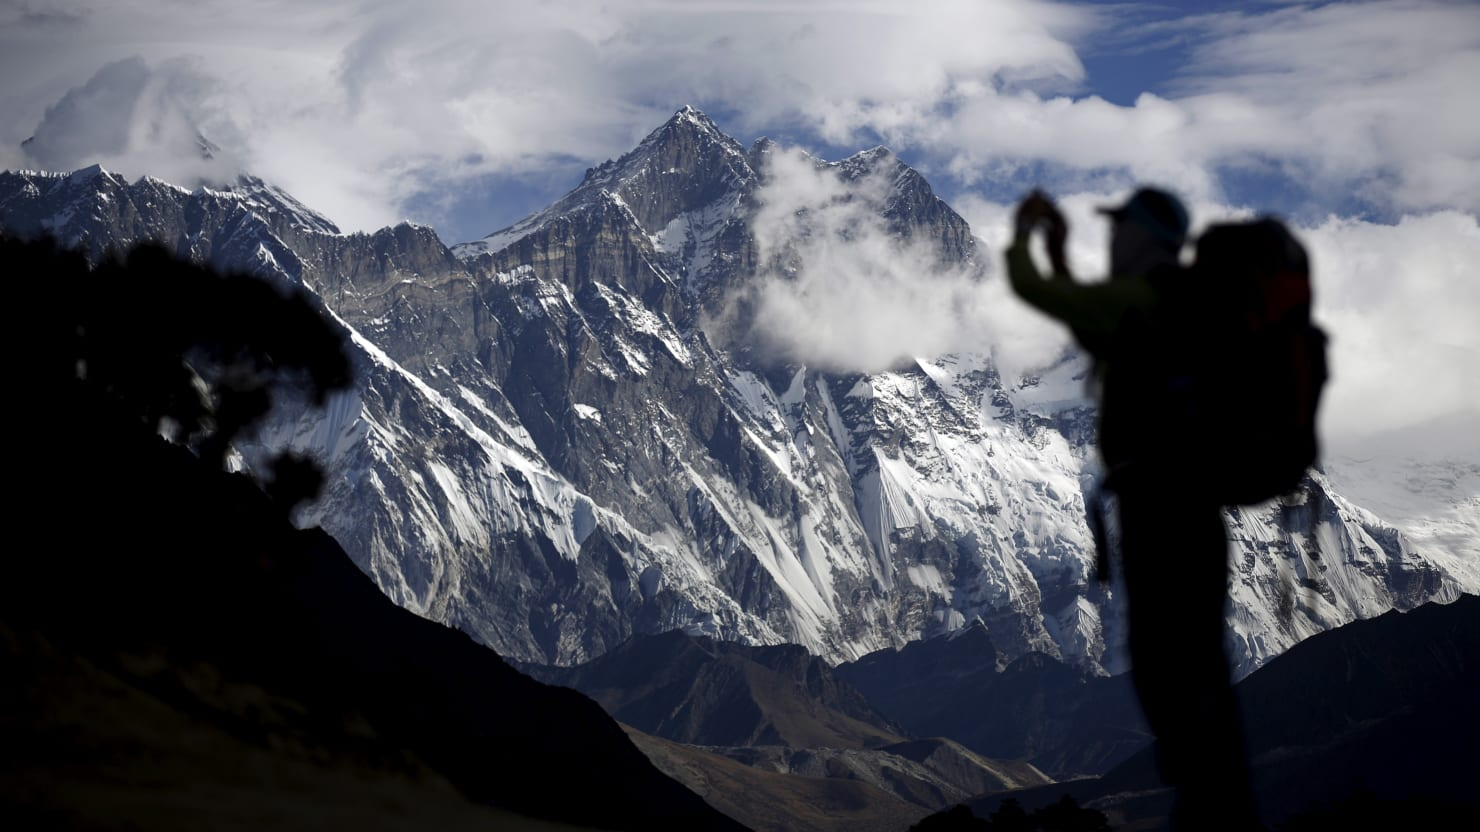 Utah Man Dies on Everest After Climbing Each Continent's Tallest Mountain: Family